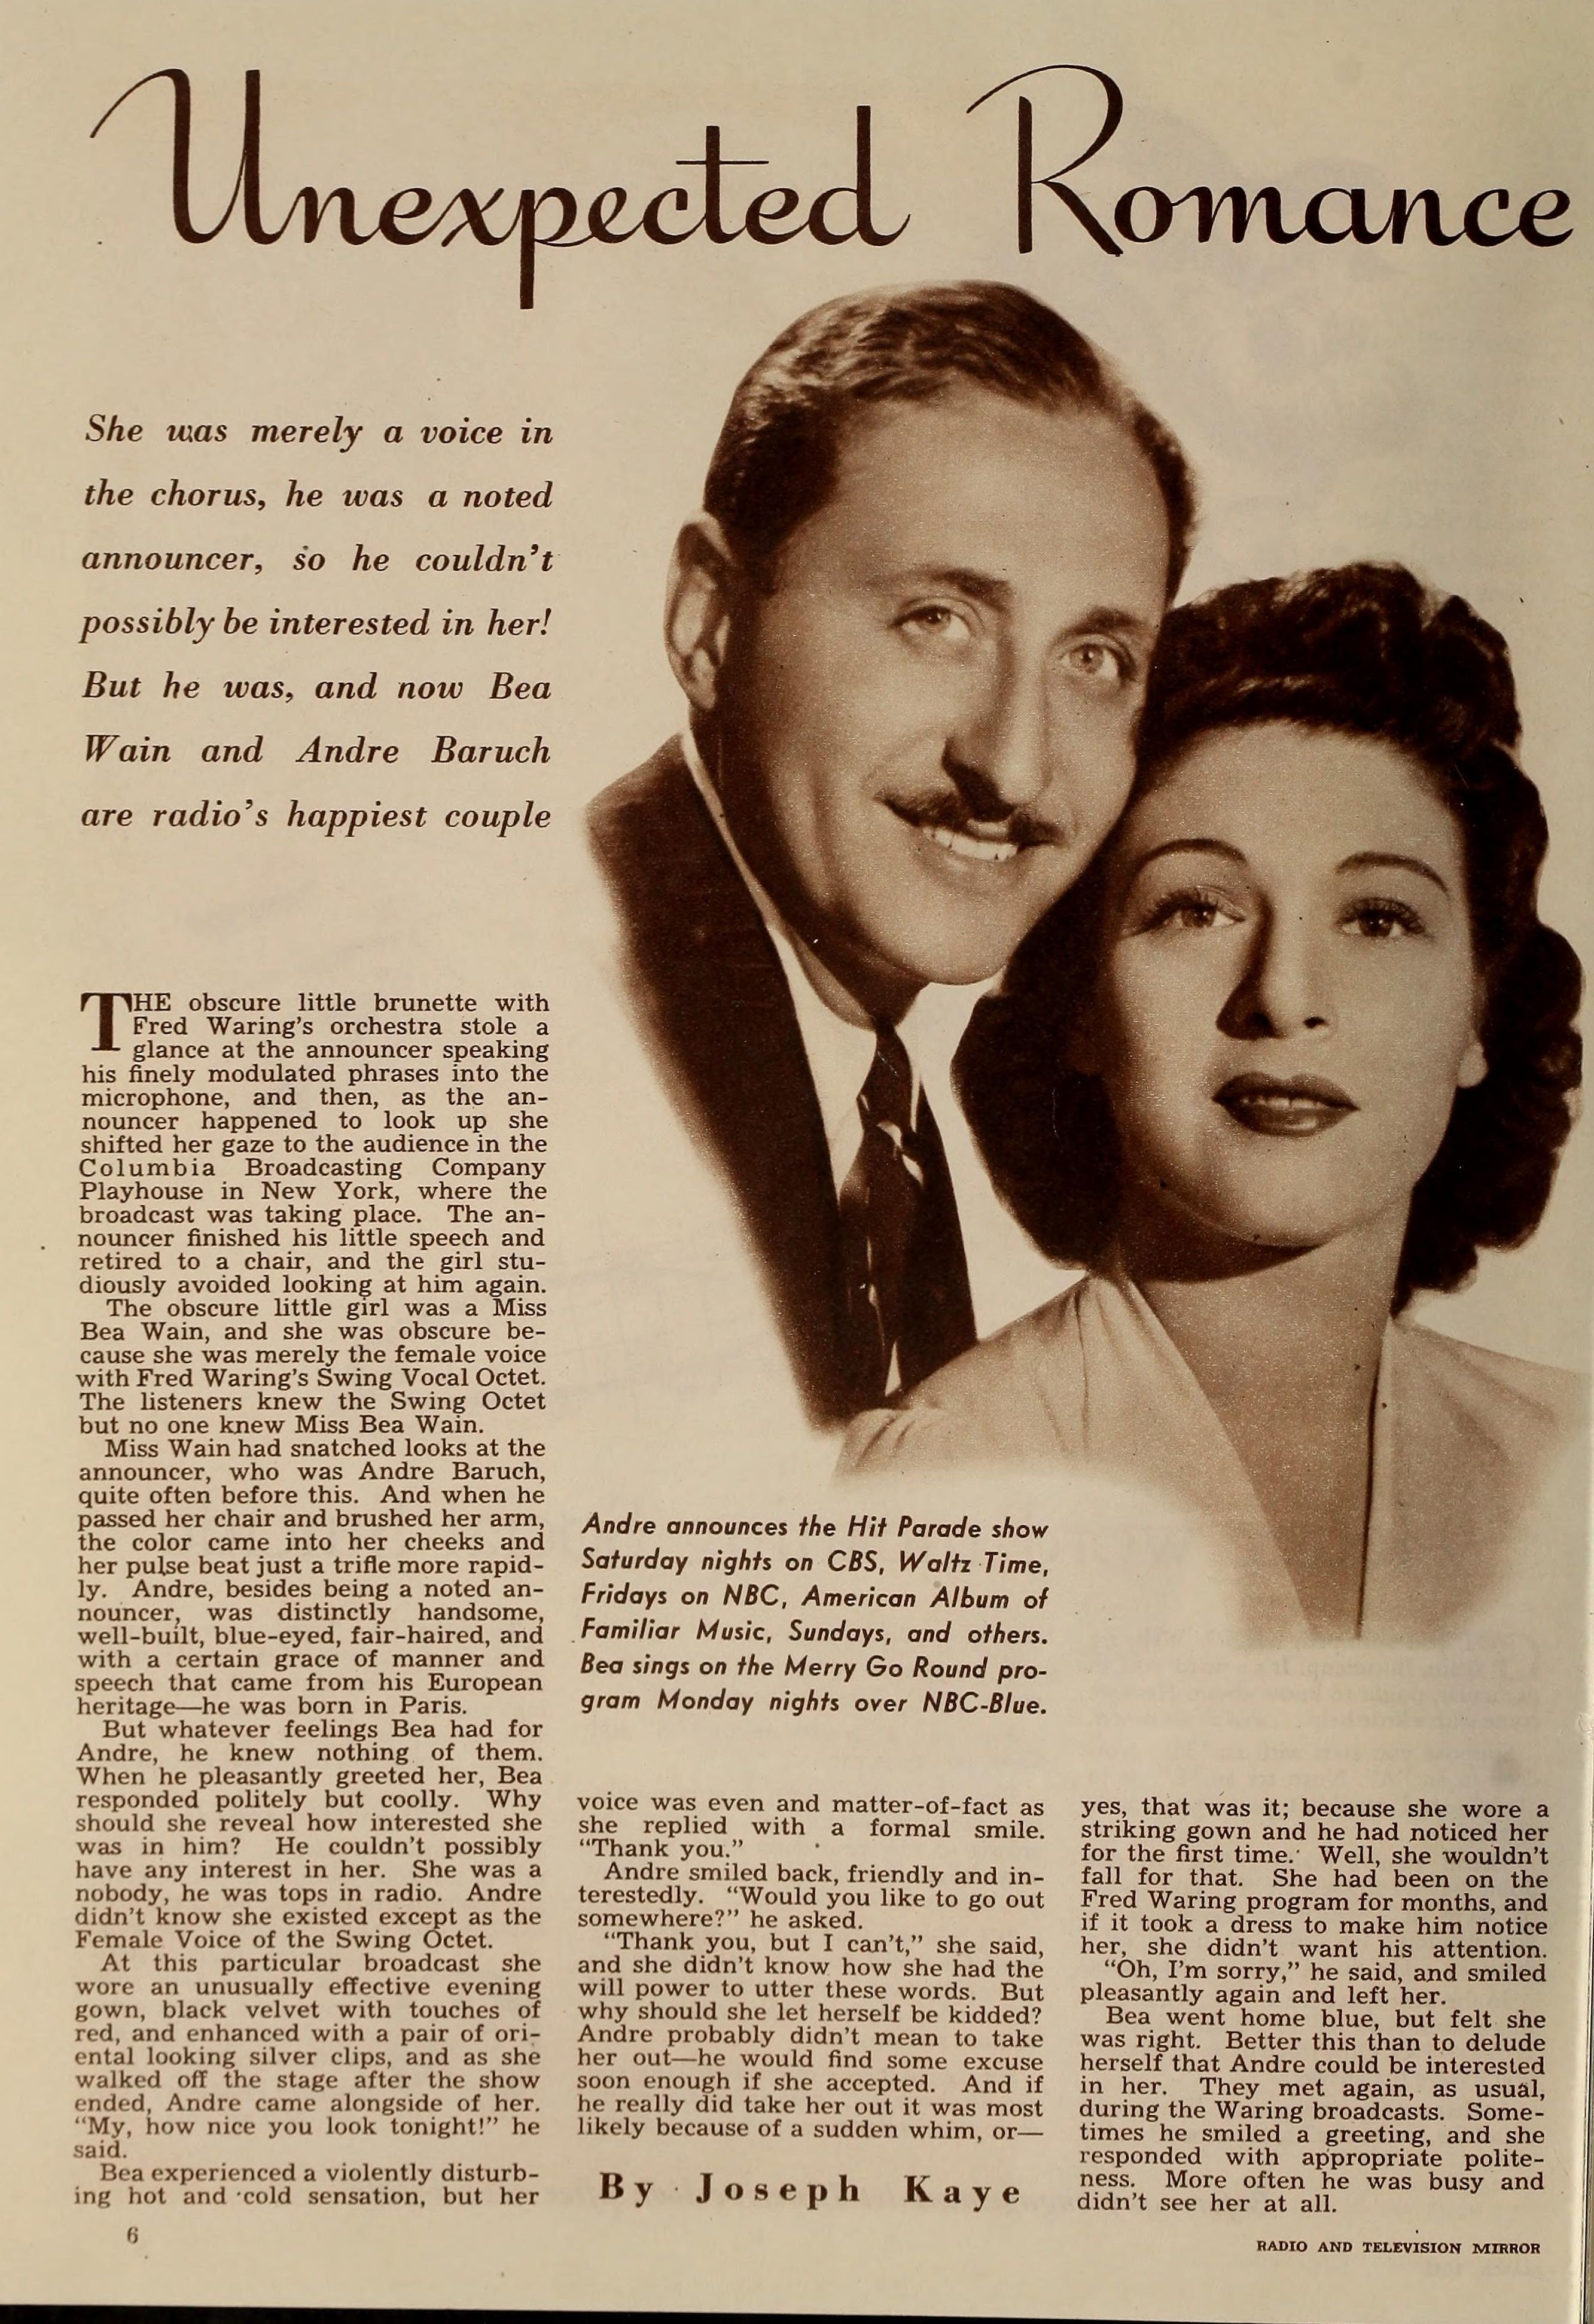 Bea Wain and André Baruch